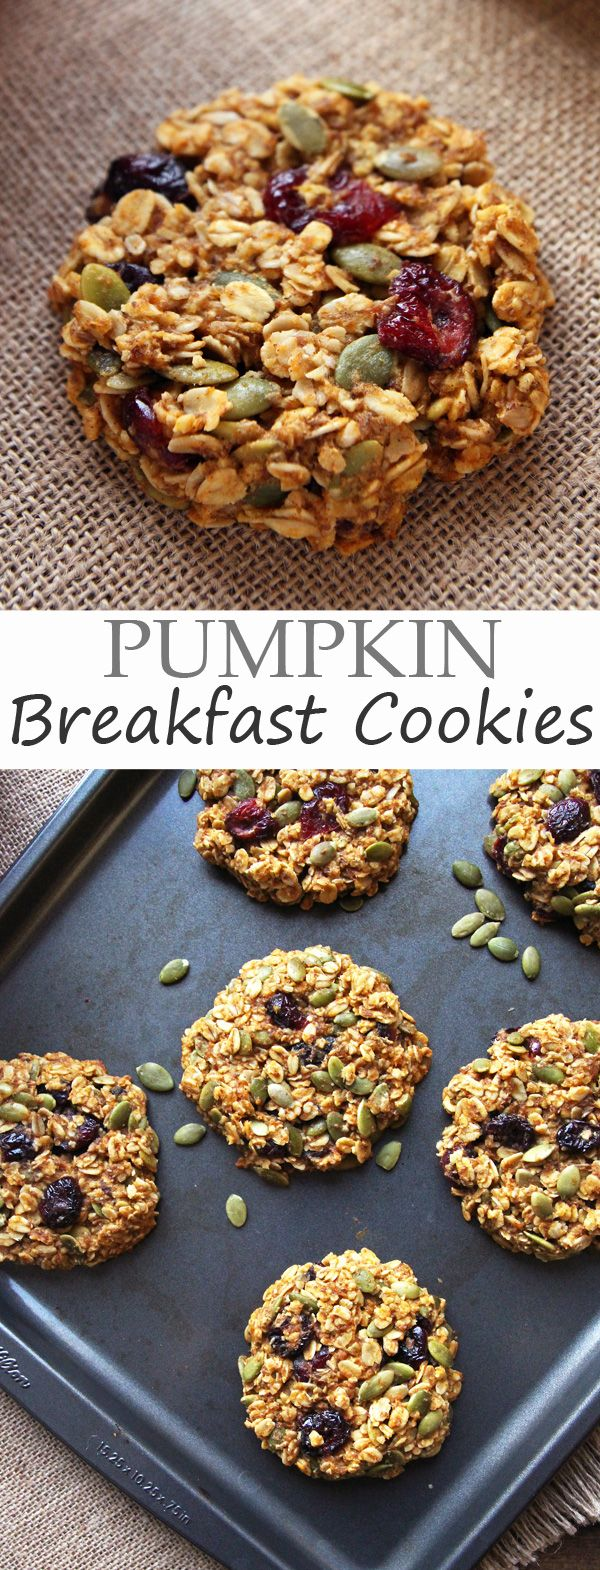 Pumpkin Breakfast Cookies.